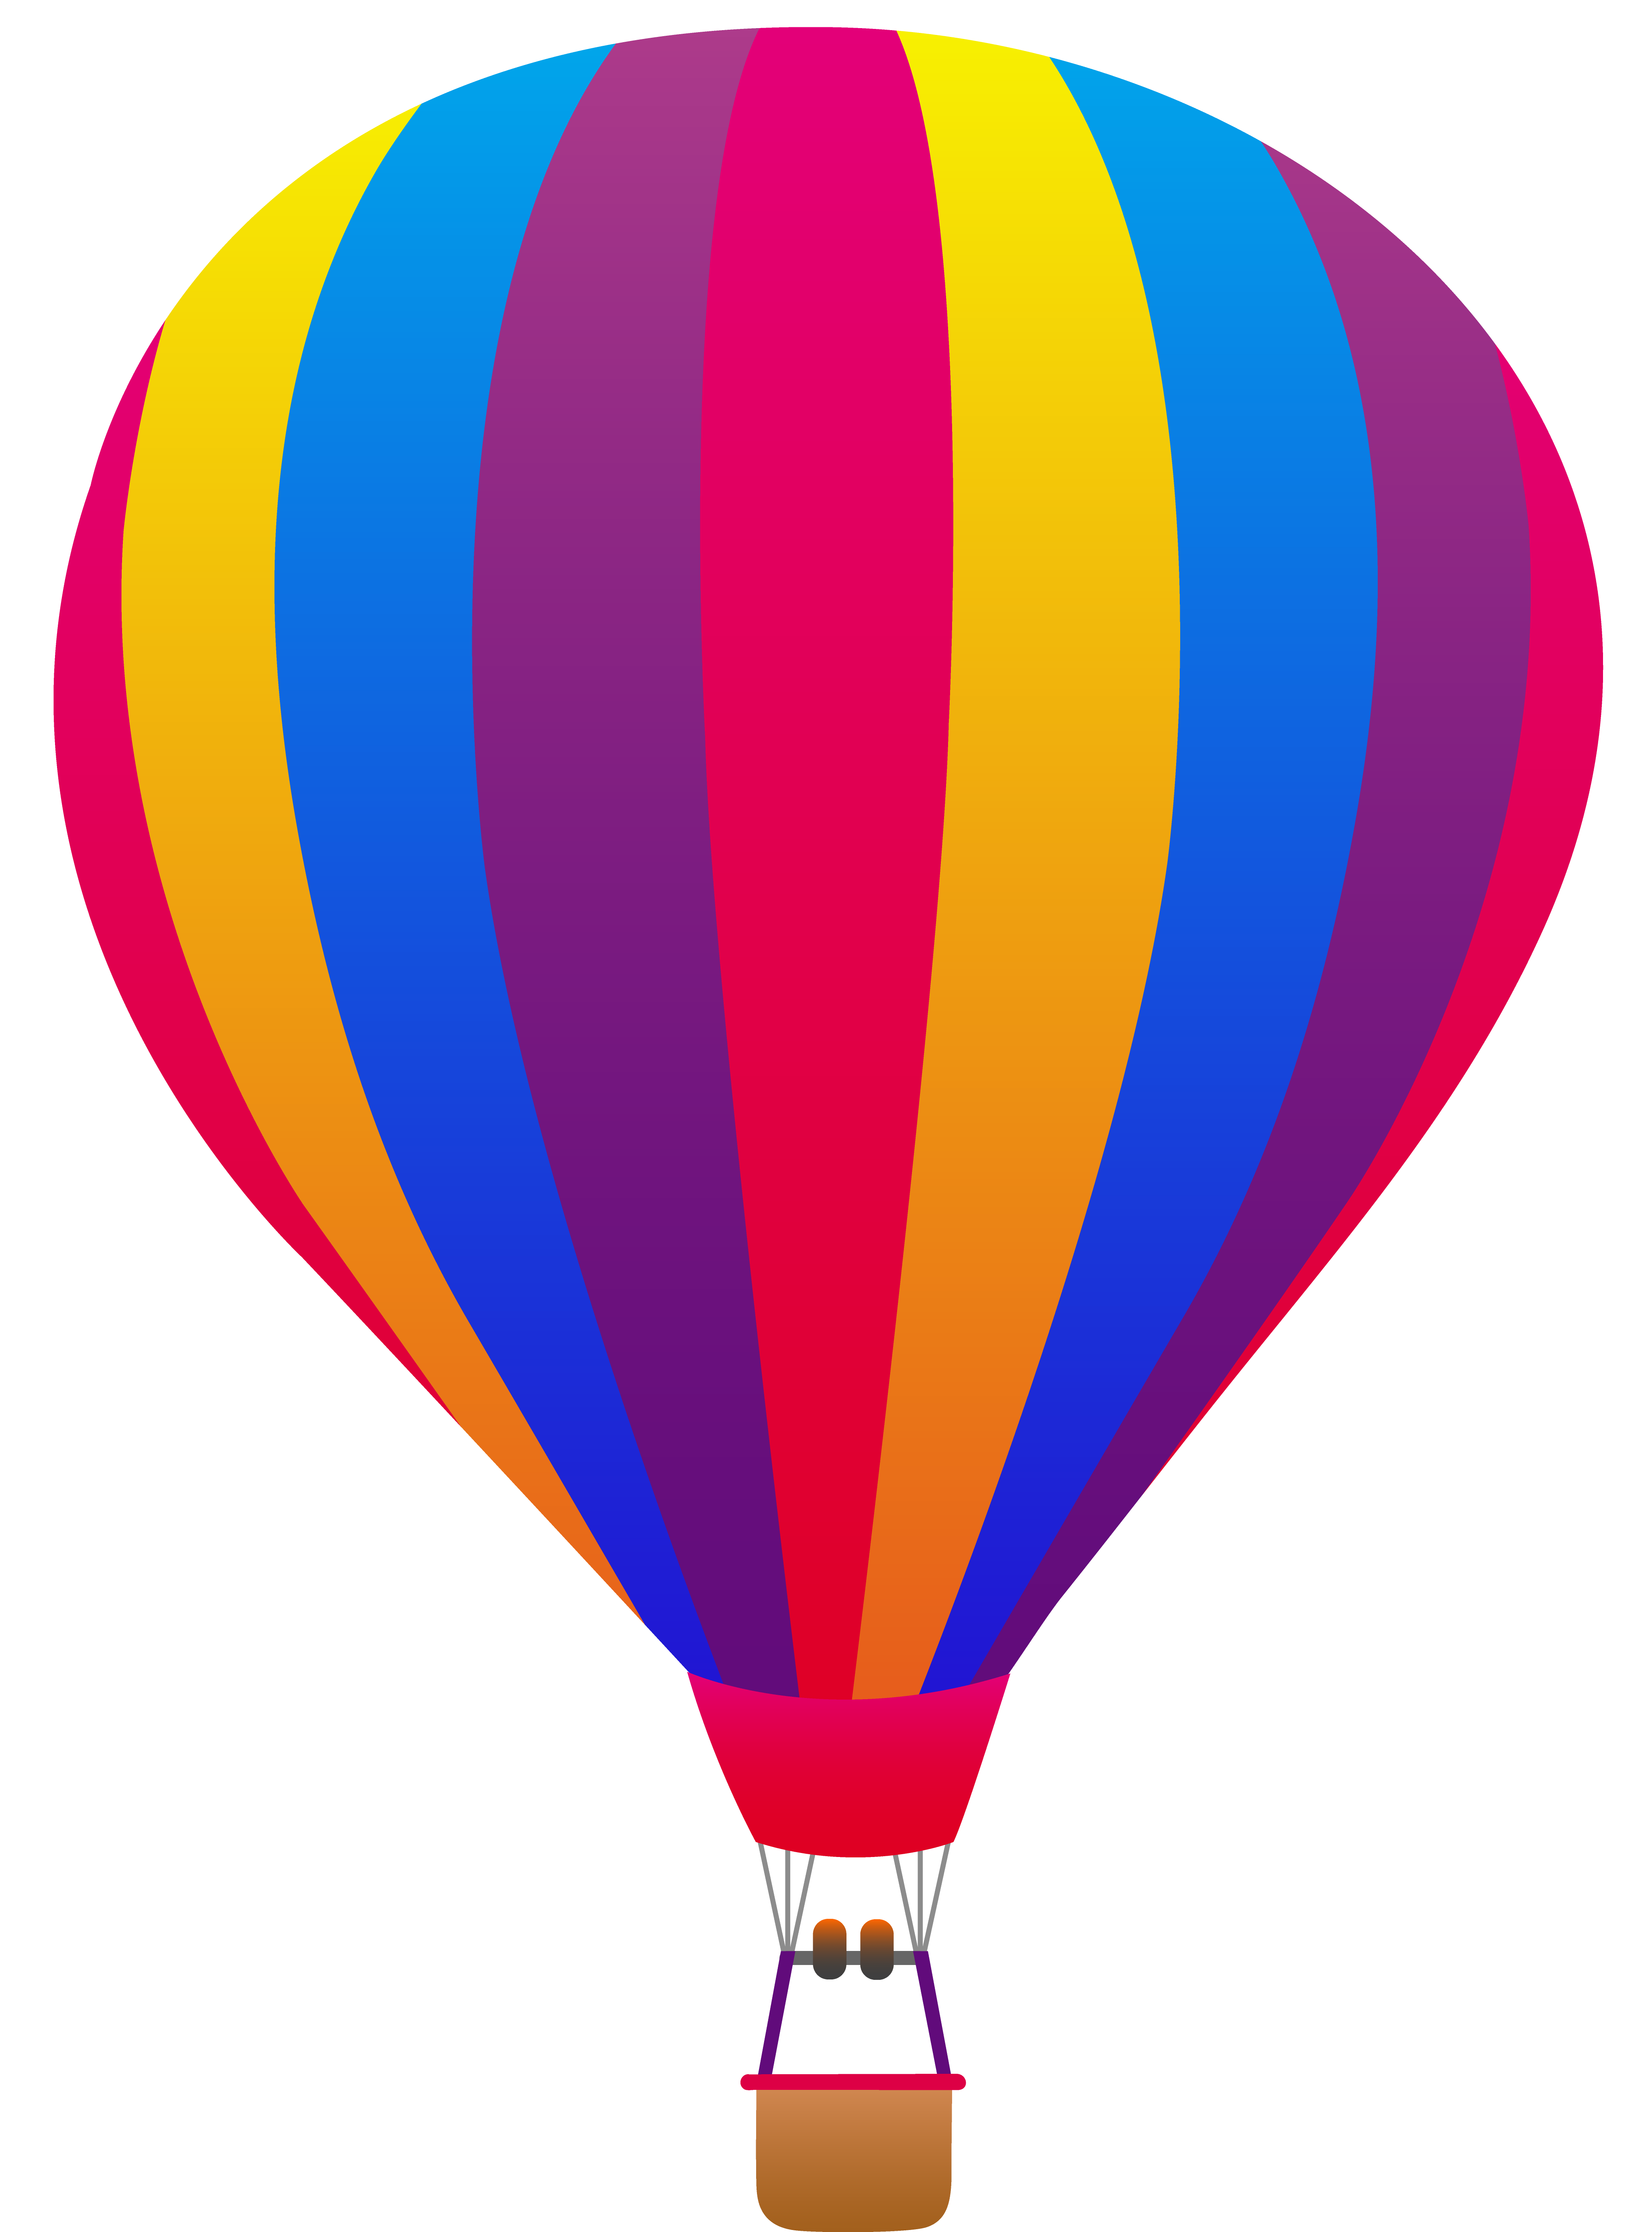 Hot Air Balloon Clip Art Pink Yellow Blue And Purple